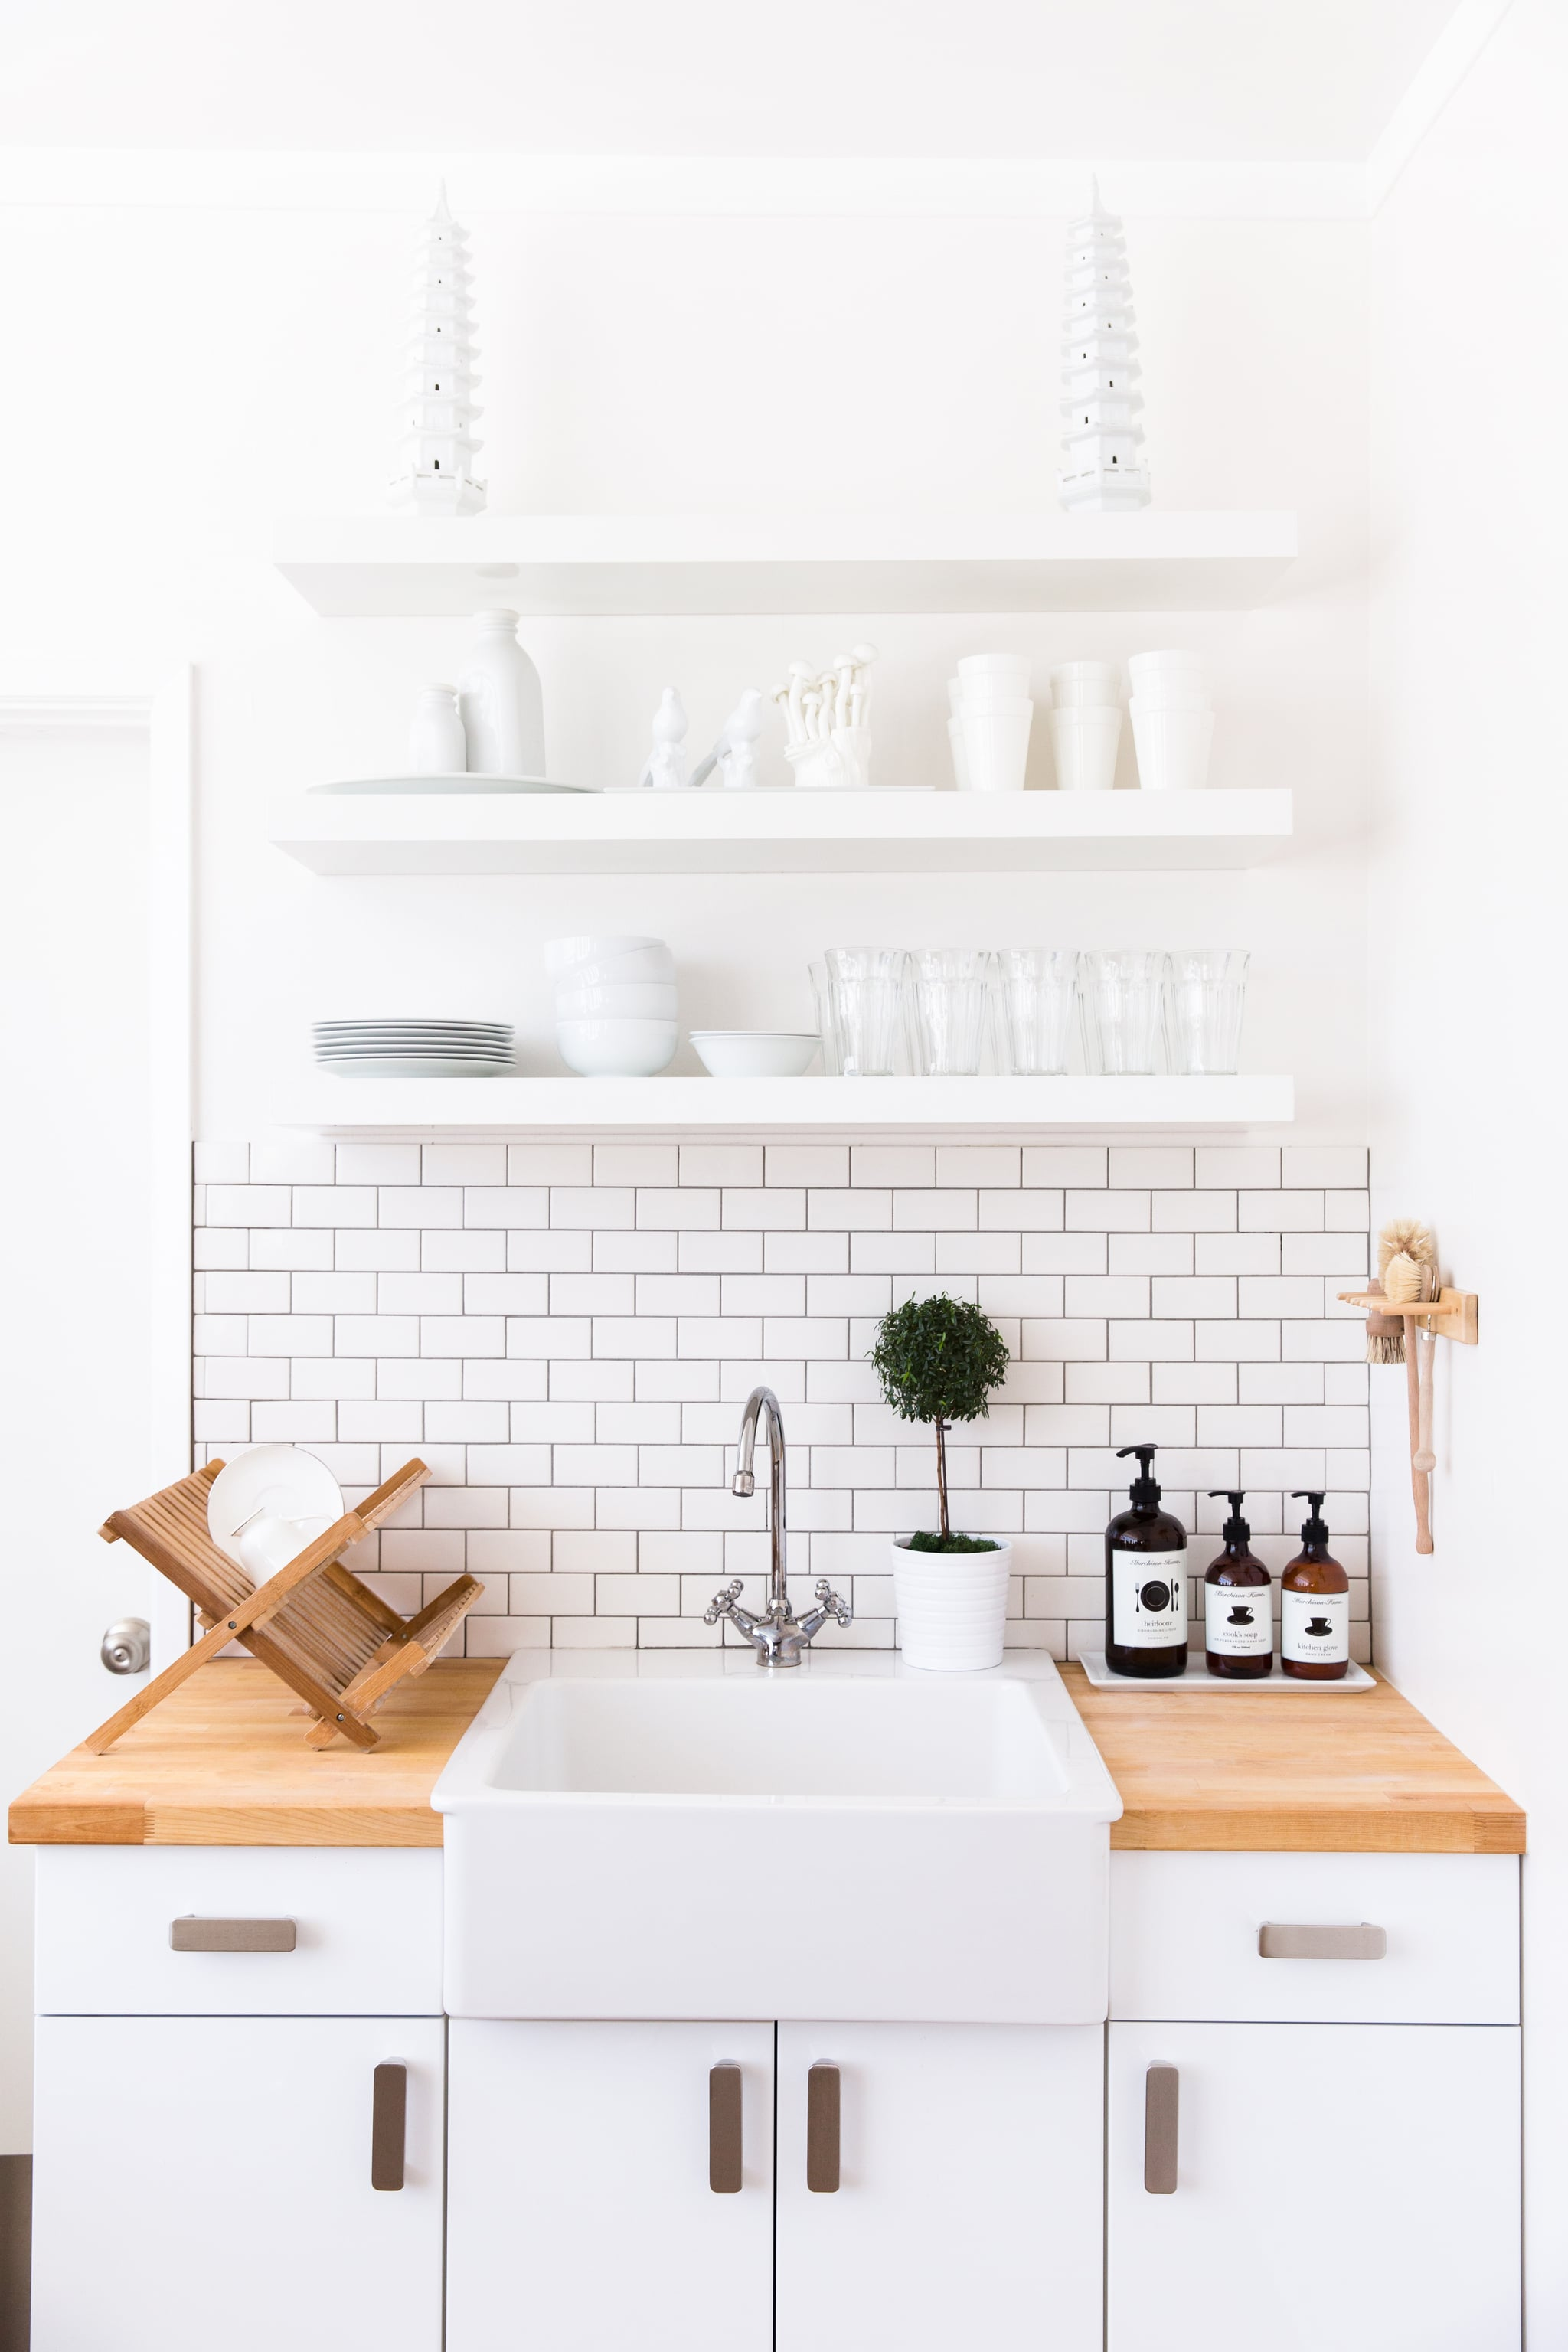 Secret 7 Surfaces The Kitchen And Bathrooms Will Be Your Biggest A Cleaning Guru Reveals The Secrets To A Tidy Home Popsugar Home Photo 9